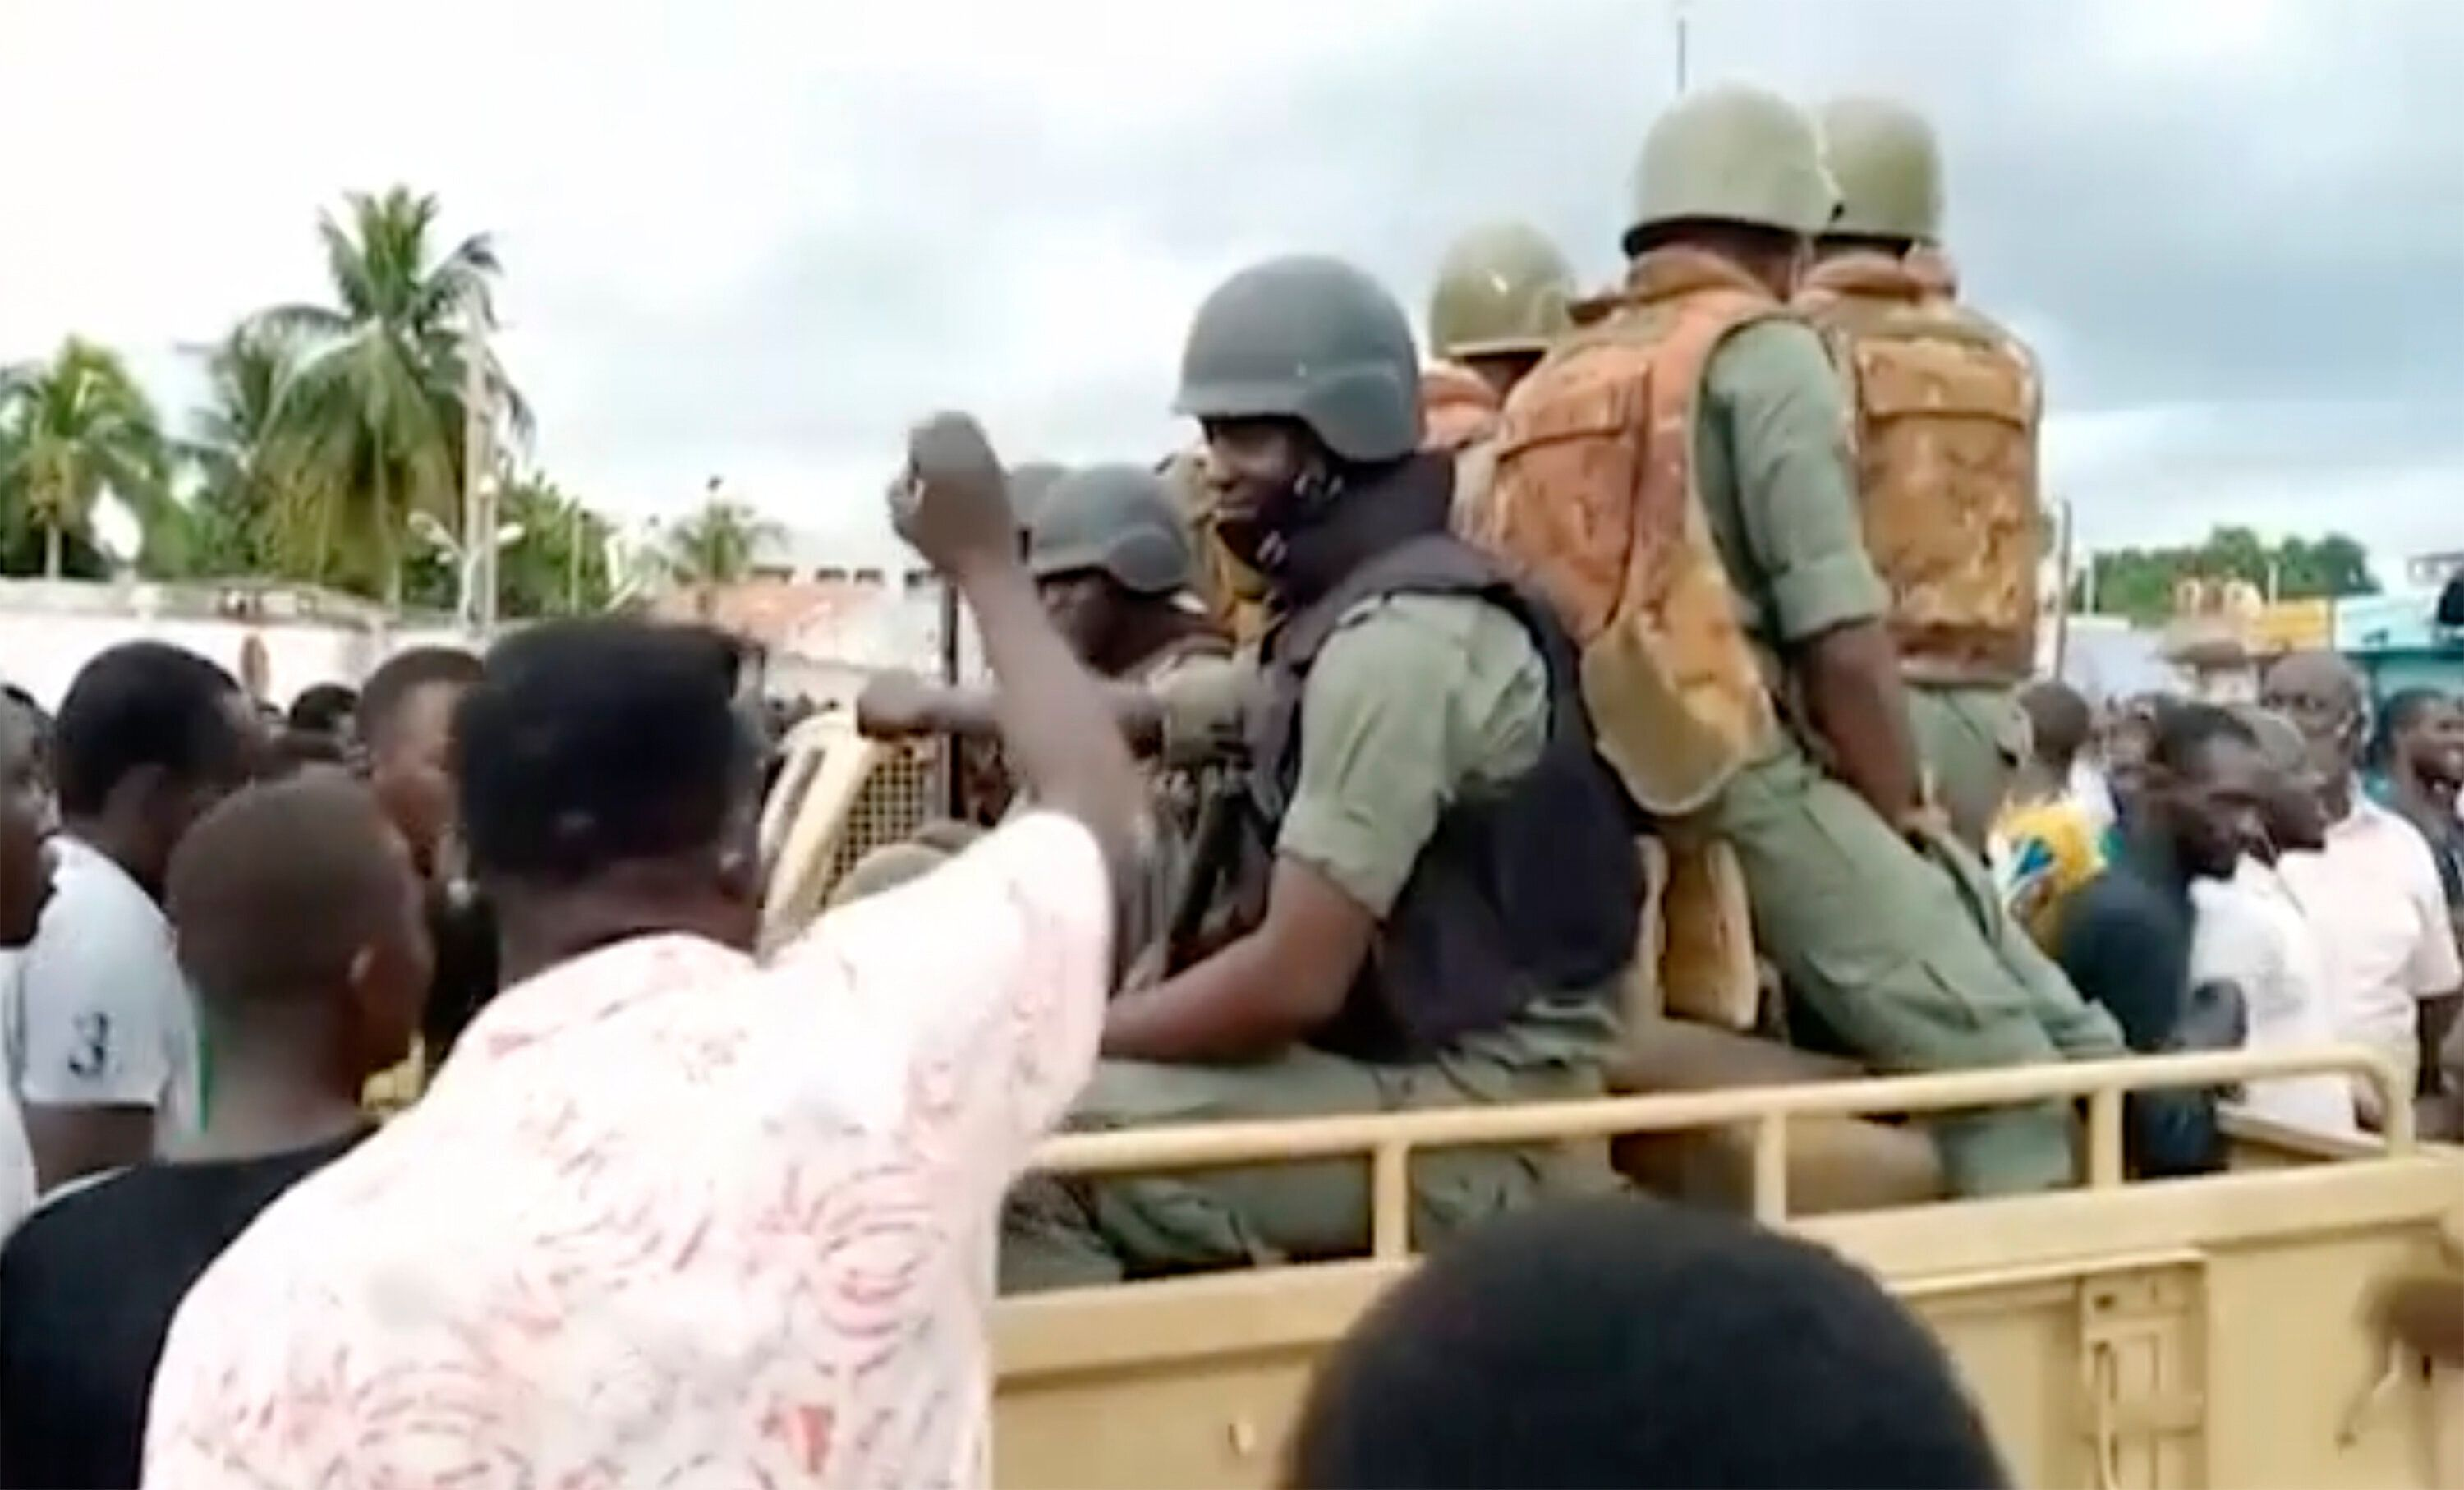 Soldiers are greeted by crowds of people, as military are stationed around President Ibrahim Boubacar Keita's city residence